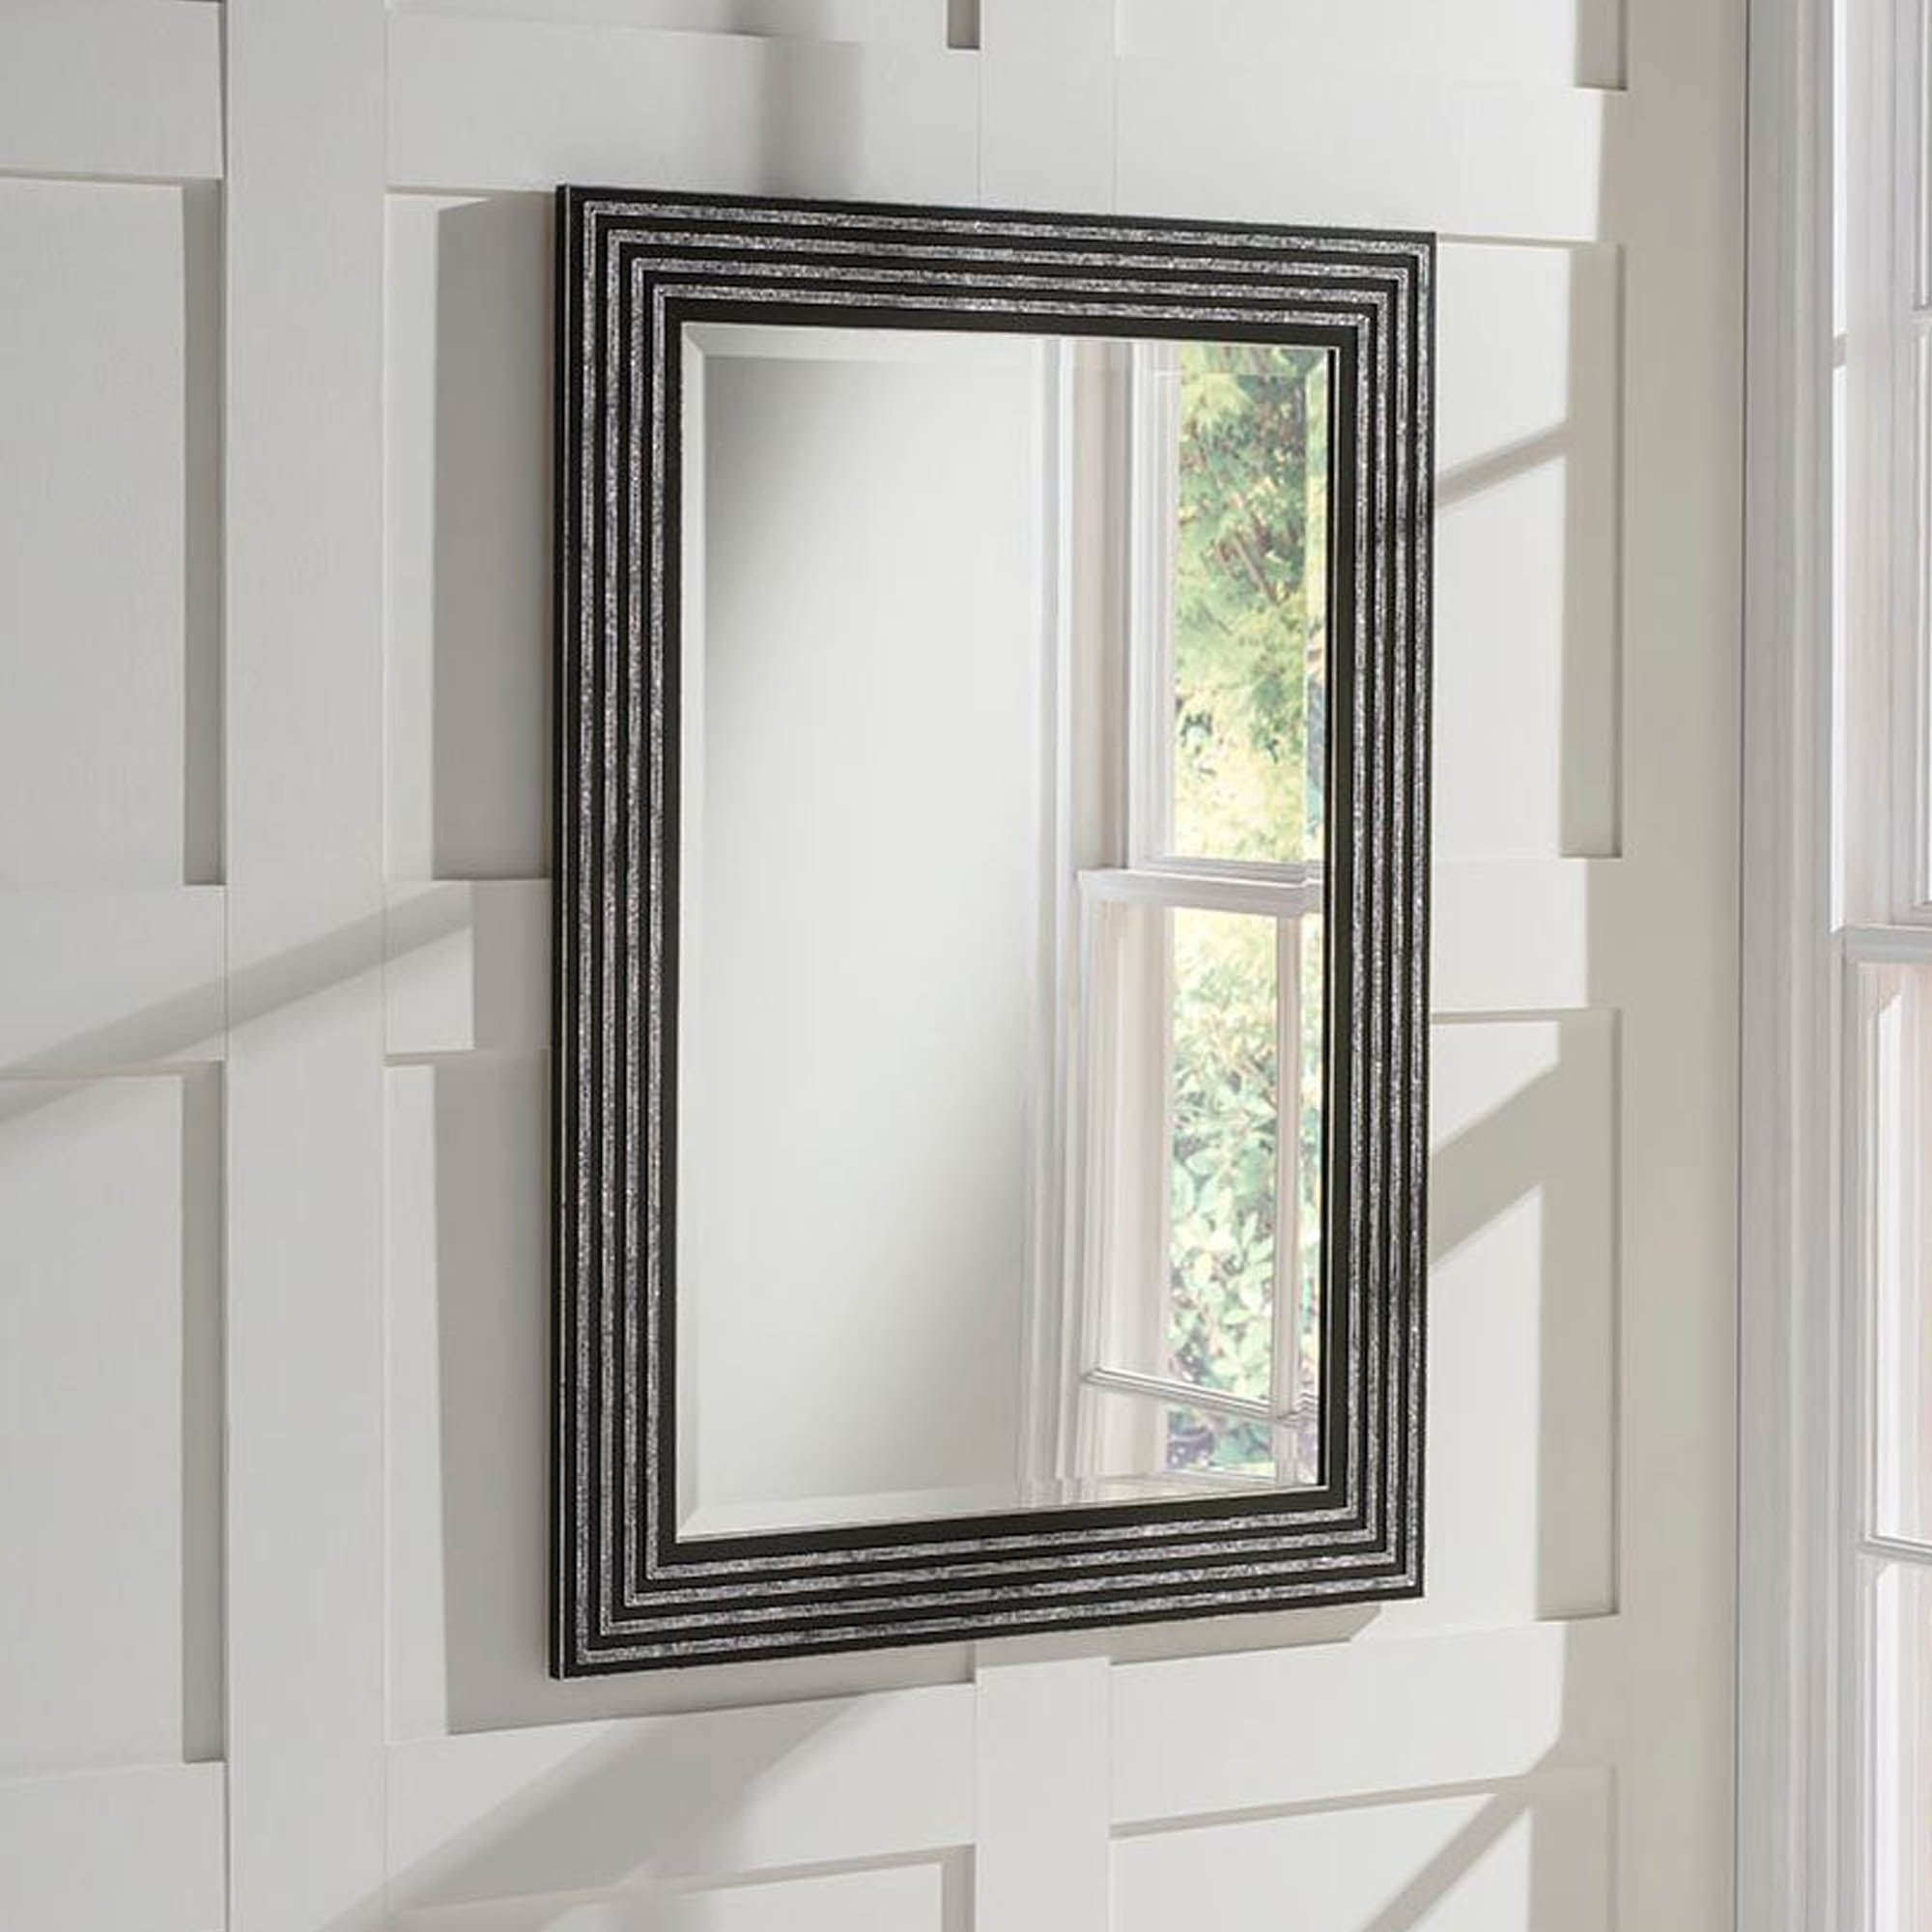 Black Decorative Wall Mirrors Regarding Fashionable Black And Silver Decorative Wall Mirror (View 2 of 20)